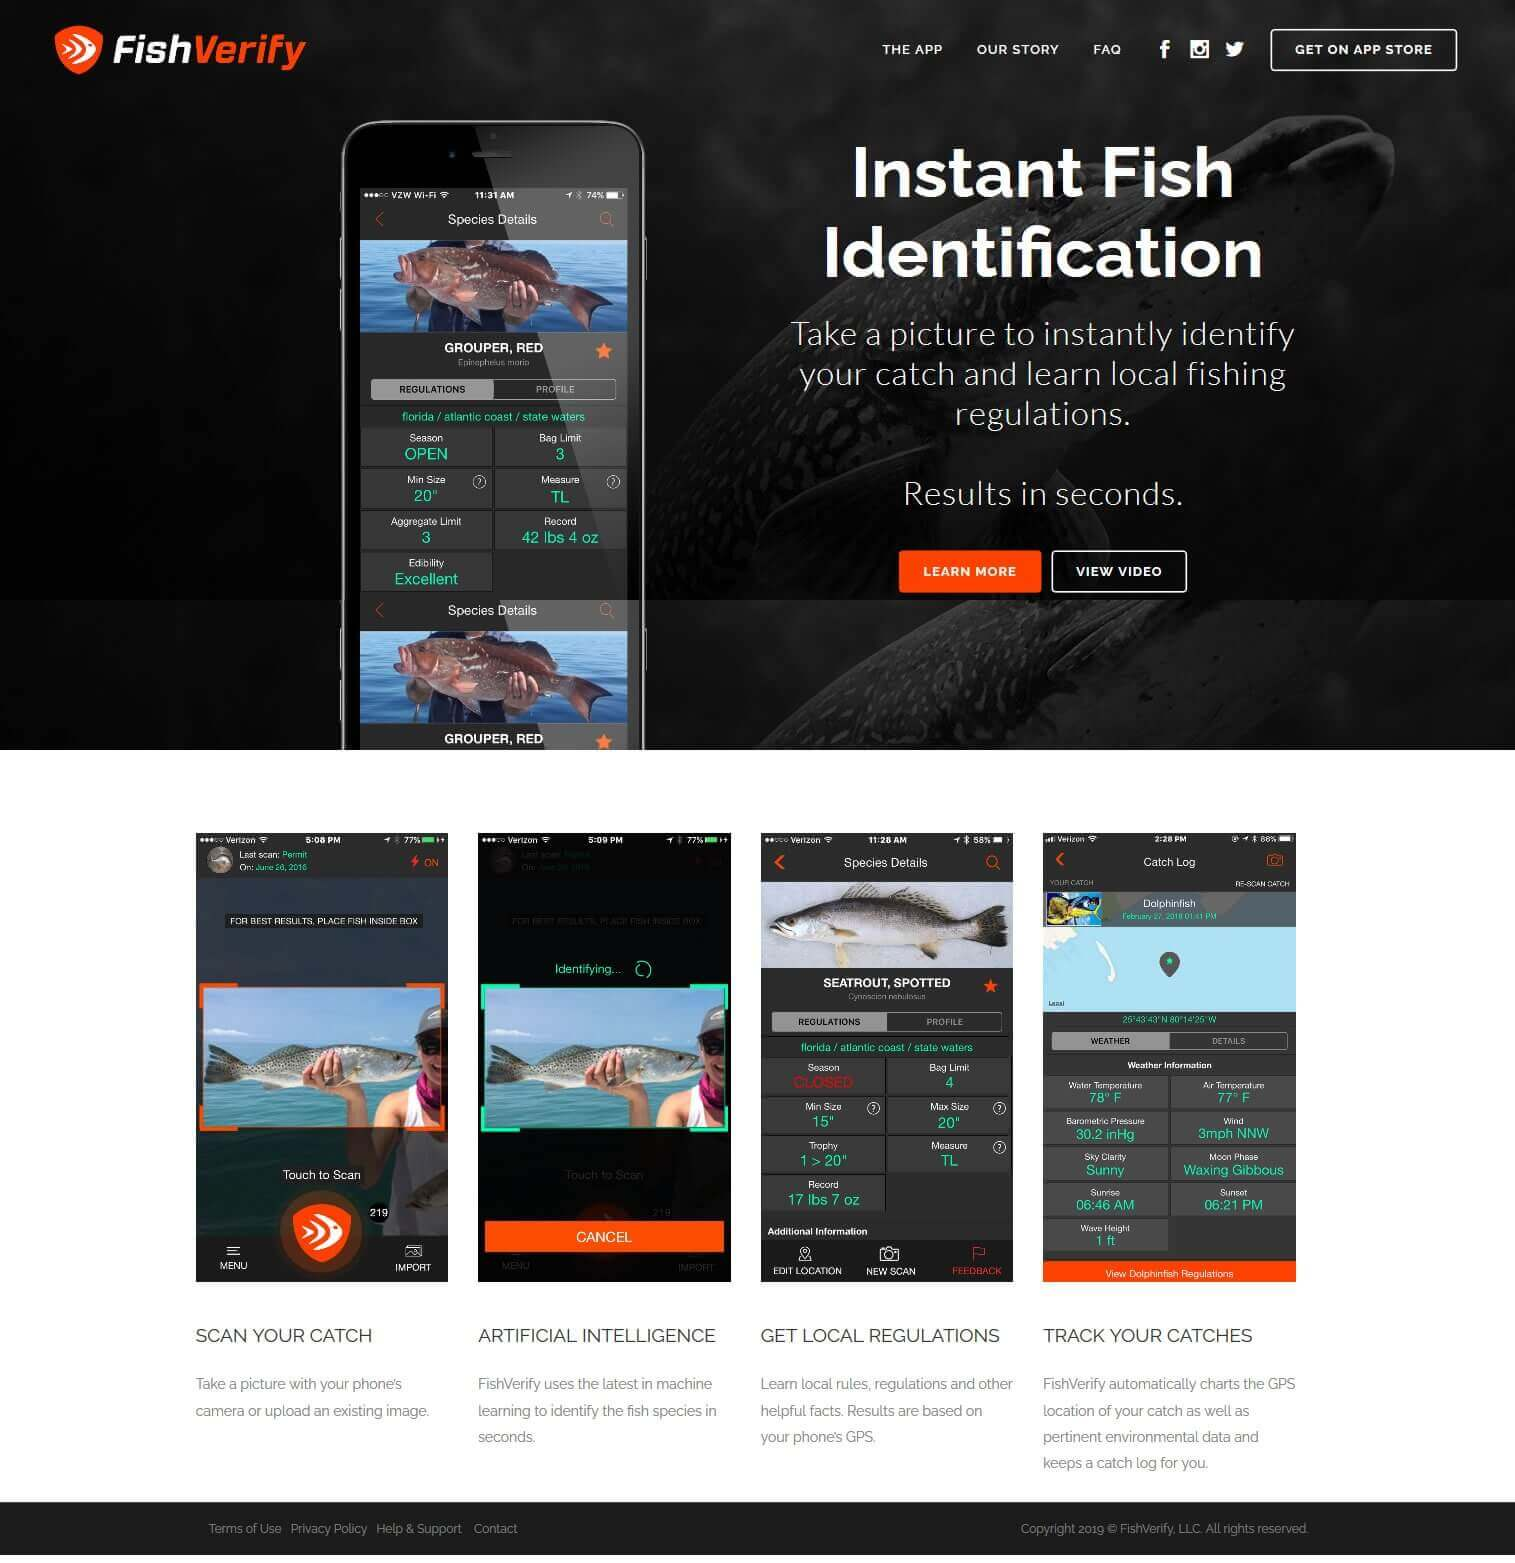 FishVerify – Instant Fish Identification